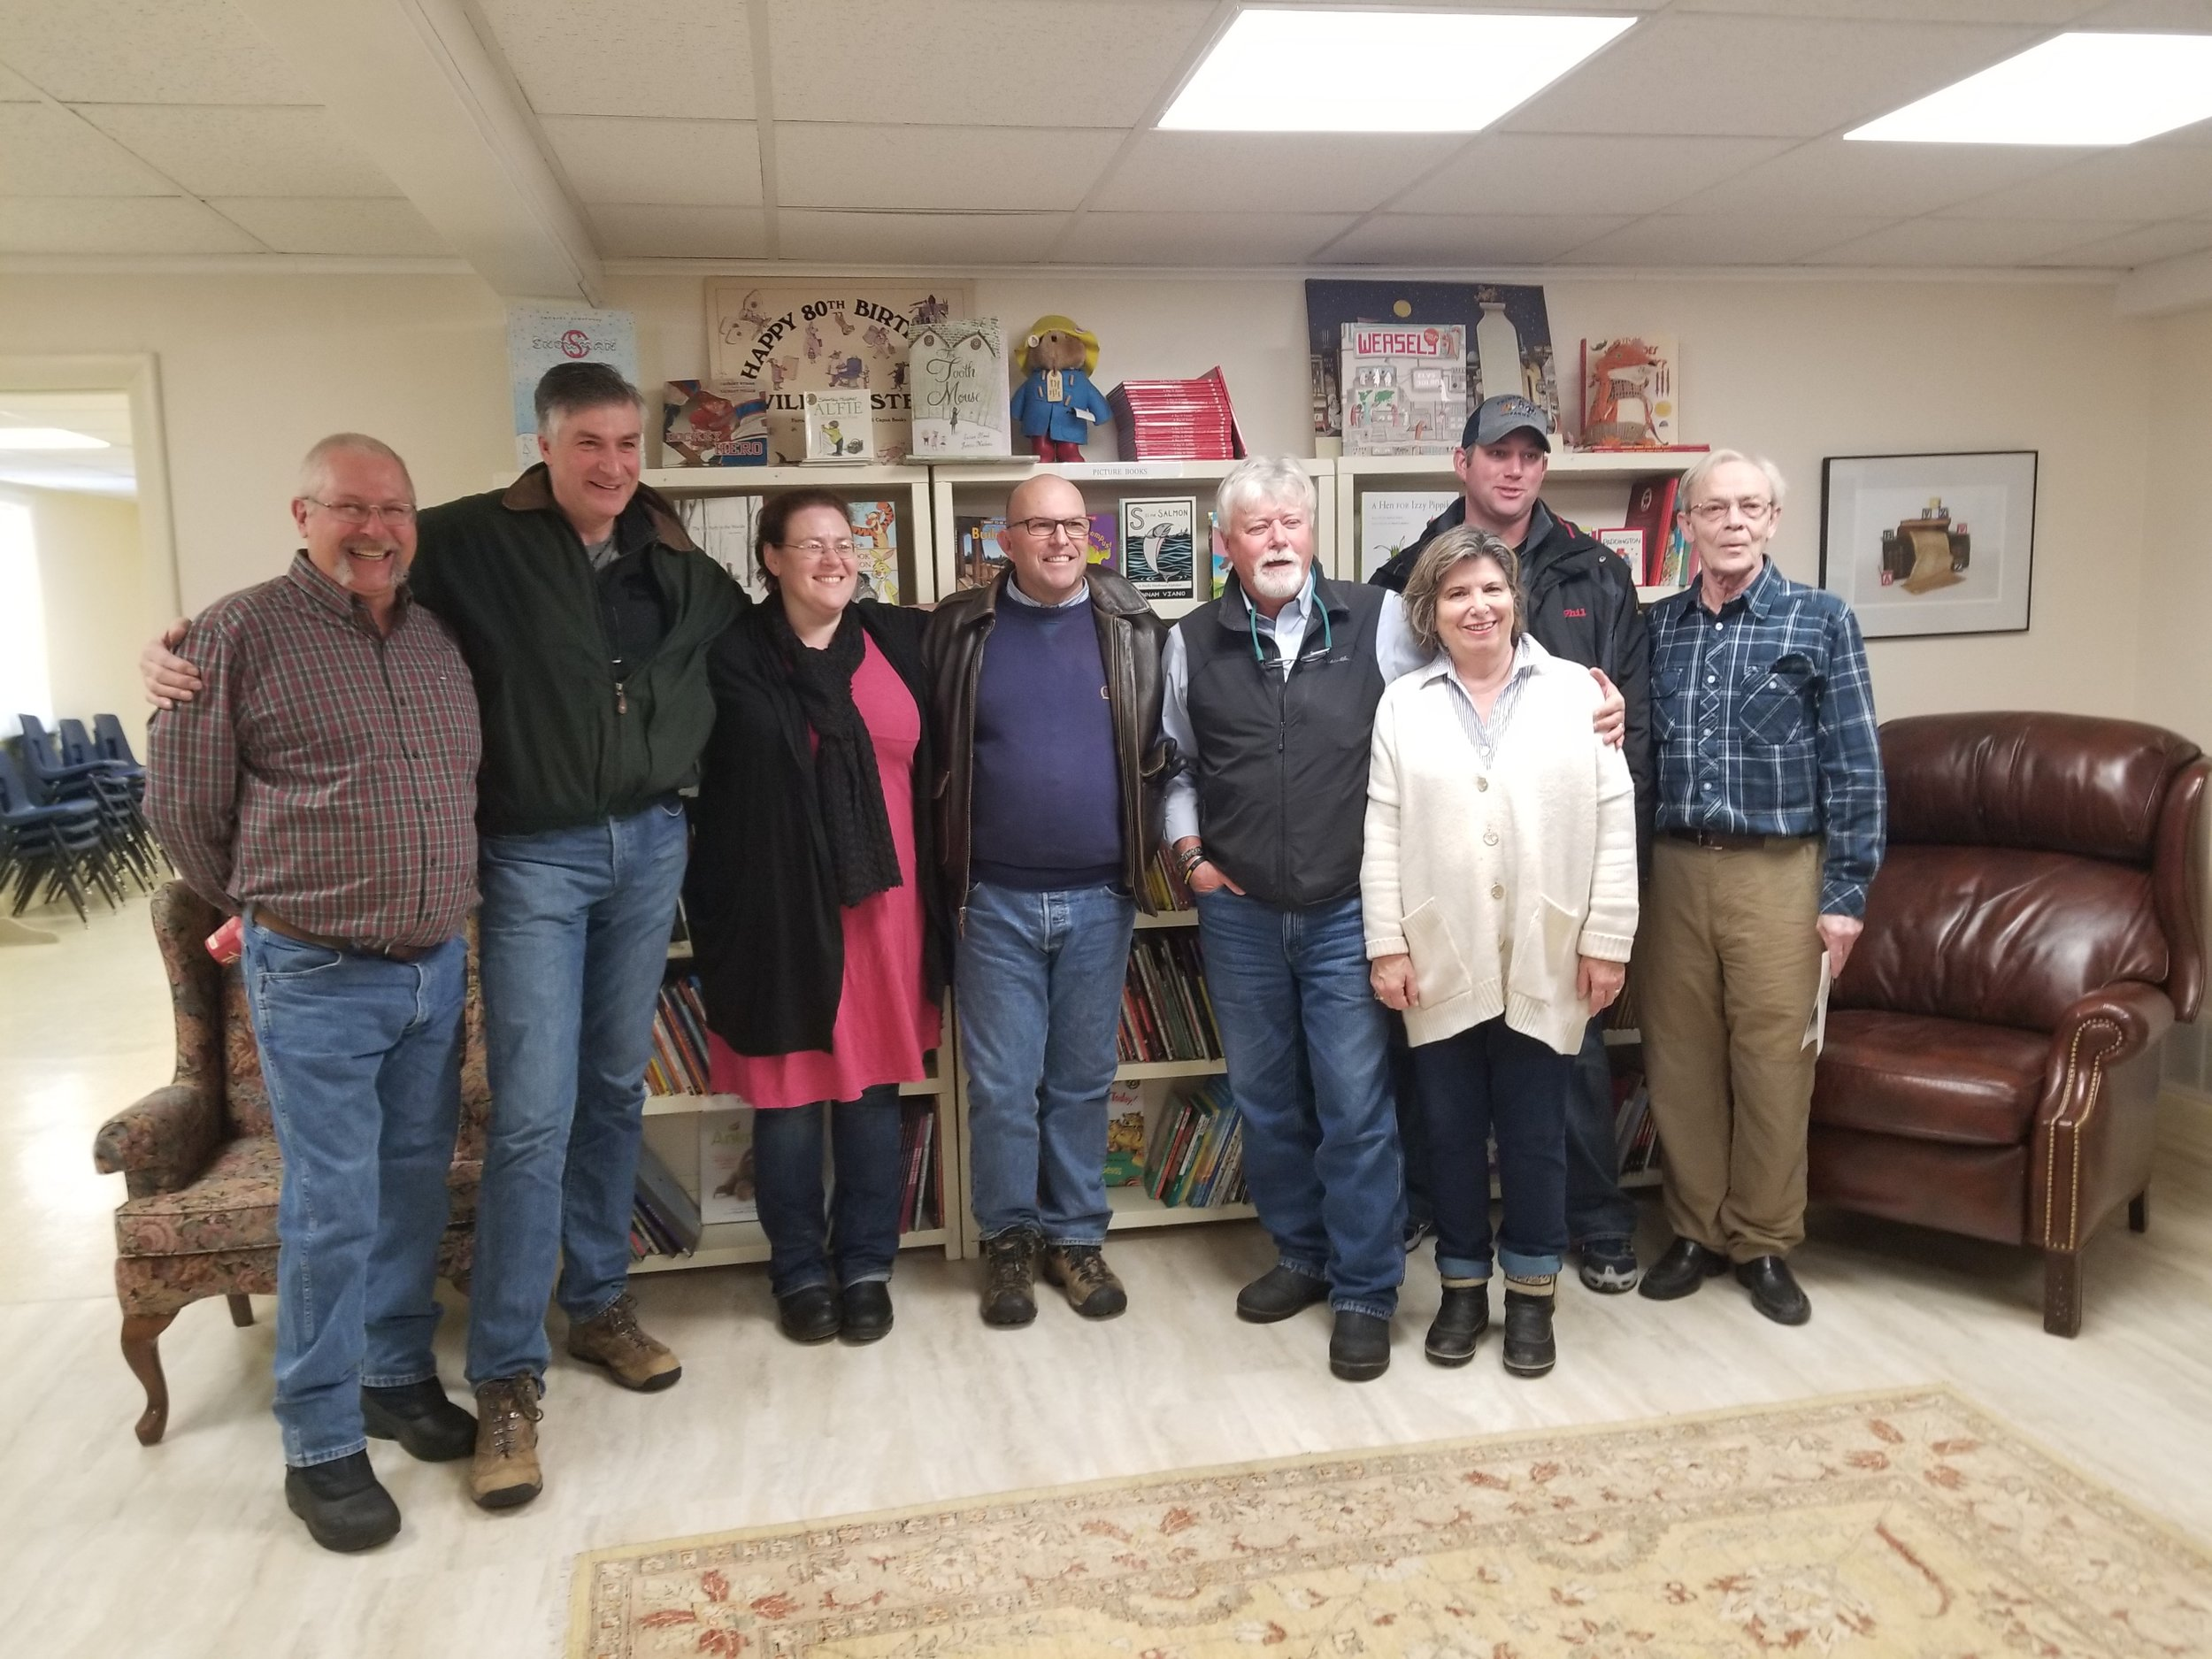 This photo, taken at the open house, includes (left to right) Municipal Councillors Phil St. Jean, Ernie Margetson, Kate MacNaughton, Mayor Steve Ferguson, Councillors Bill Roberts, Phil Prinzen, CKR Chair Anne Preston (in front) and Councillor Bill McMahon.